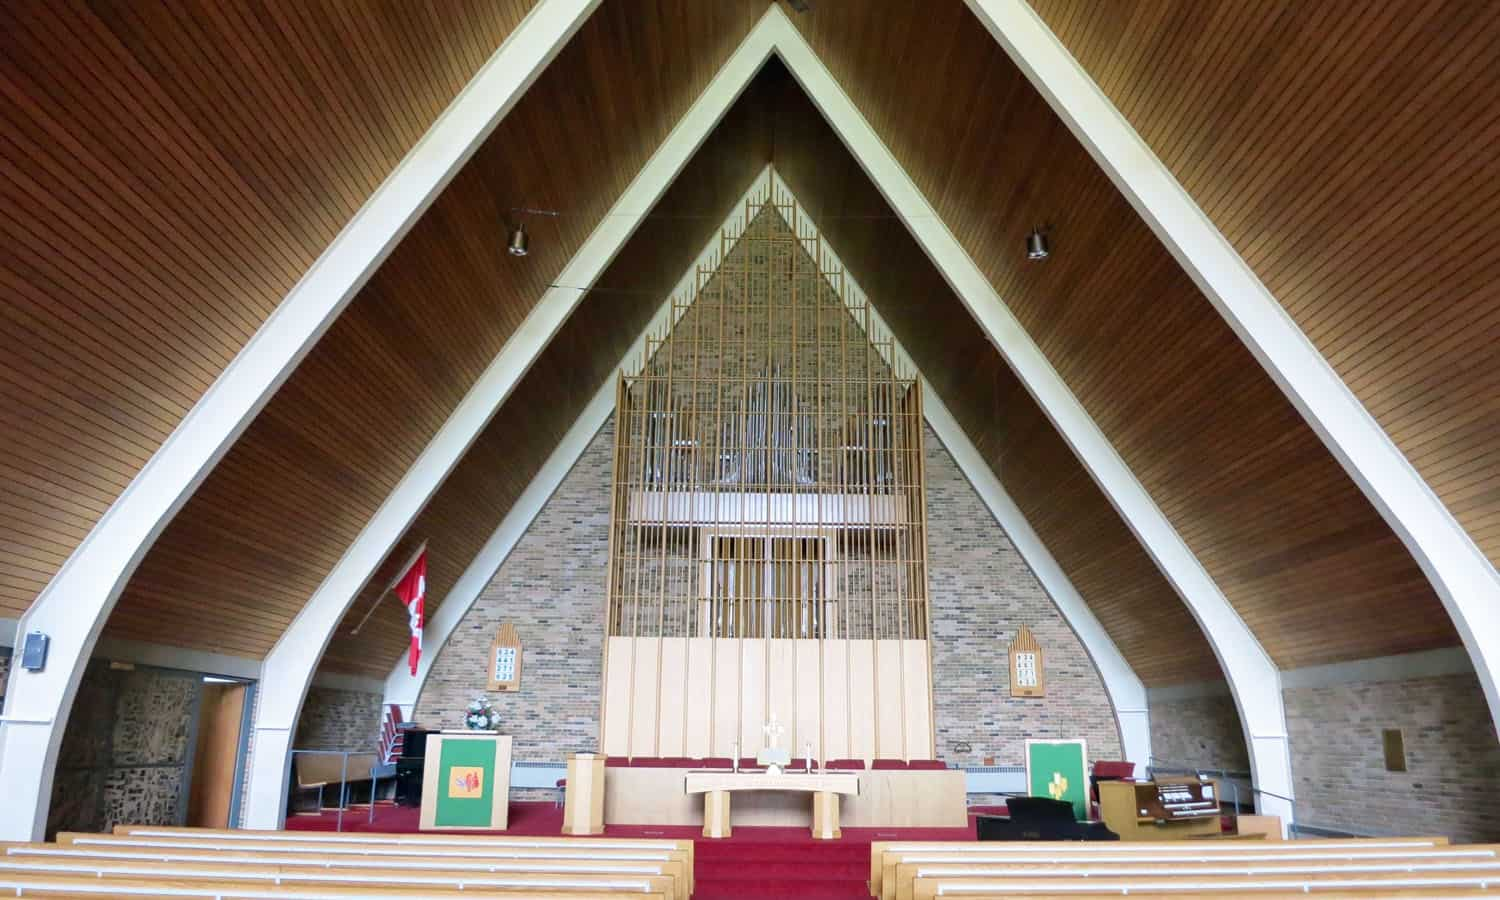 The interior of the sanctuary with its steel arches, wood ceiling, and brick walls and decorative organ screen